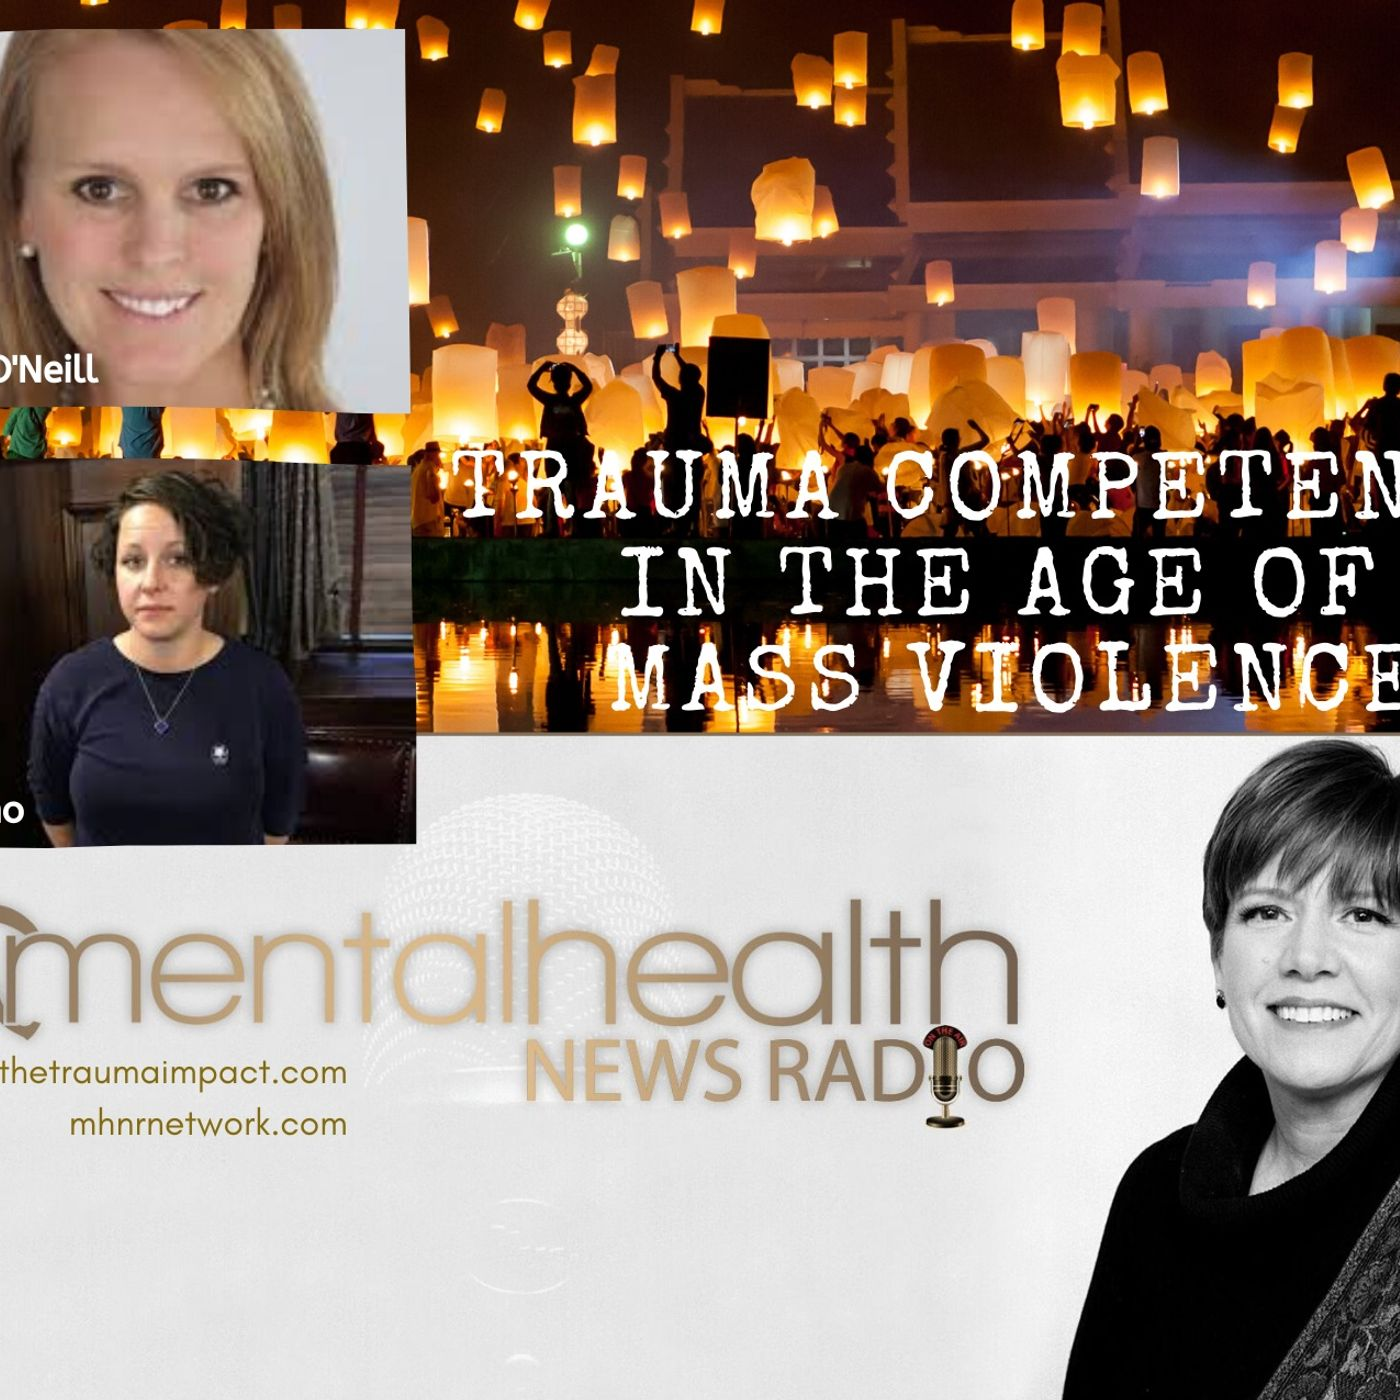 Mental Health News Radio - Trauma Competence in the Age of Mass Violence